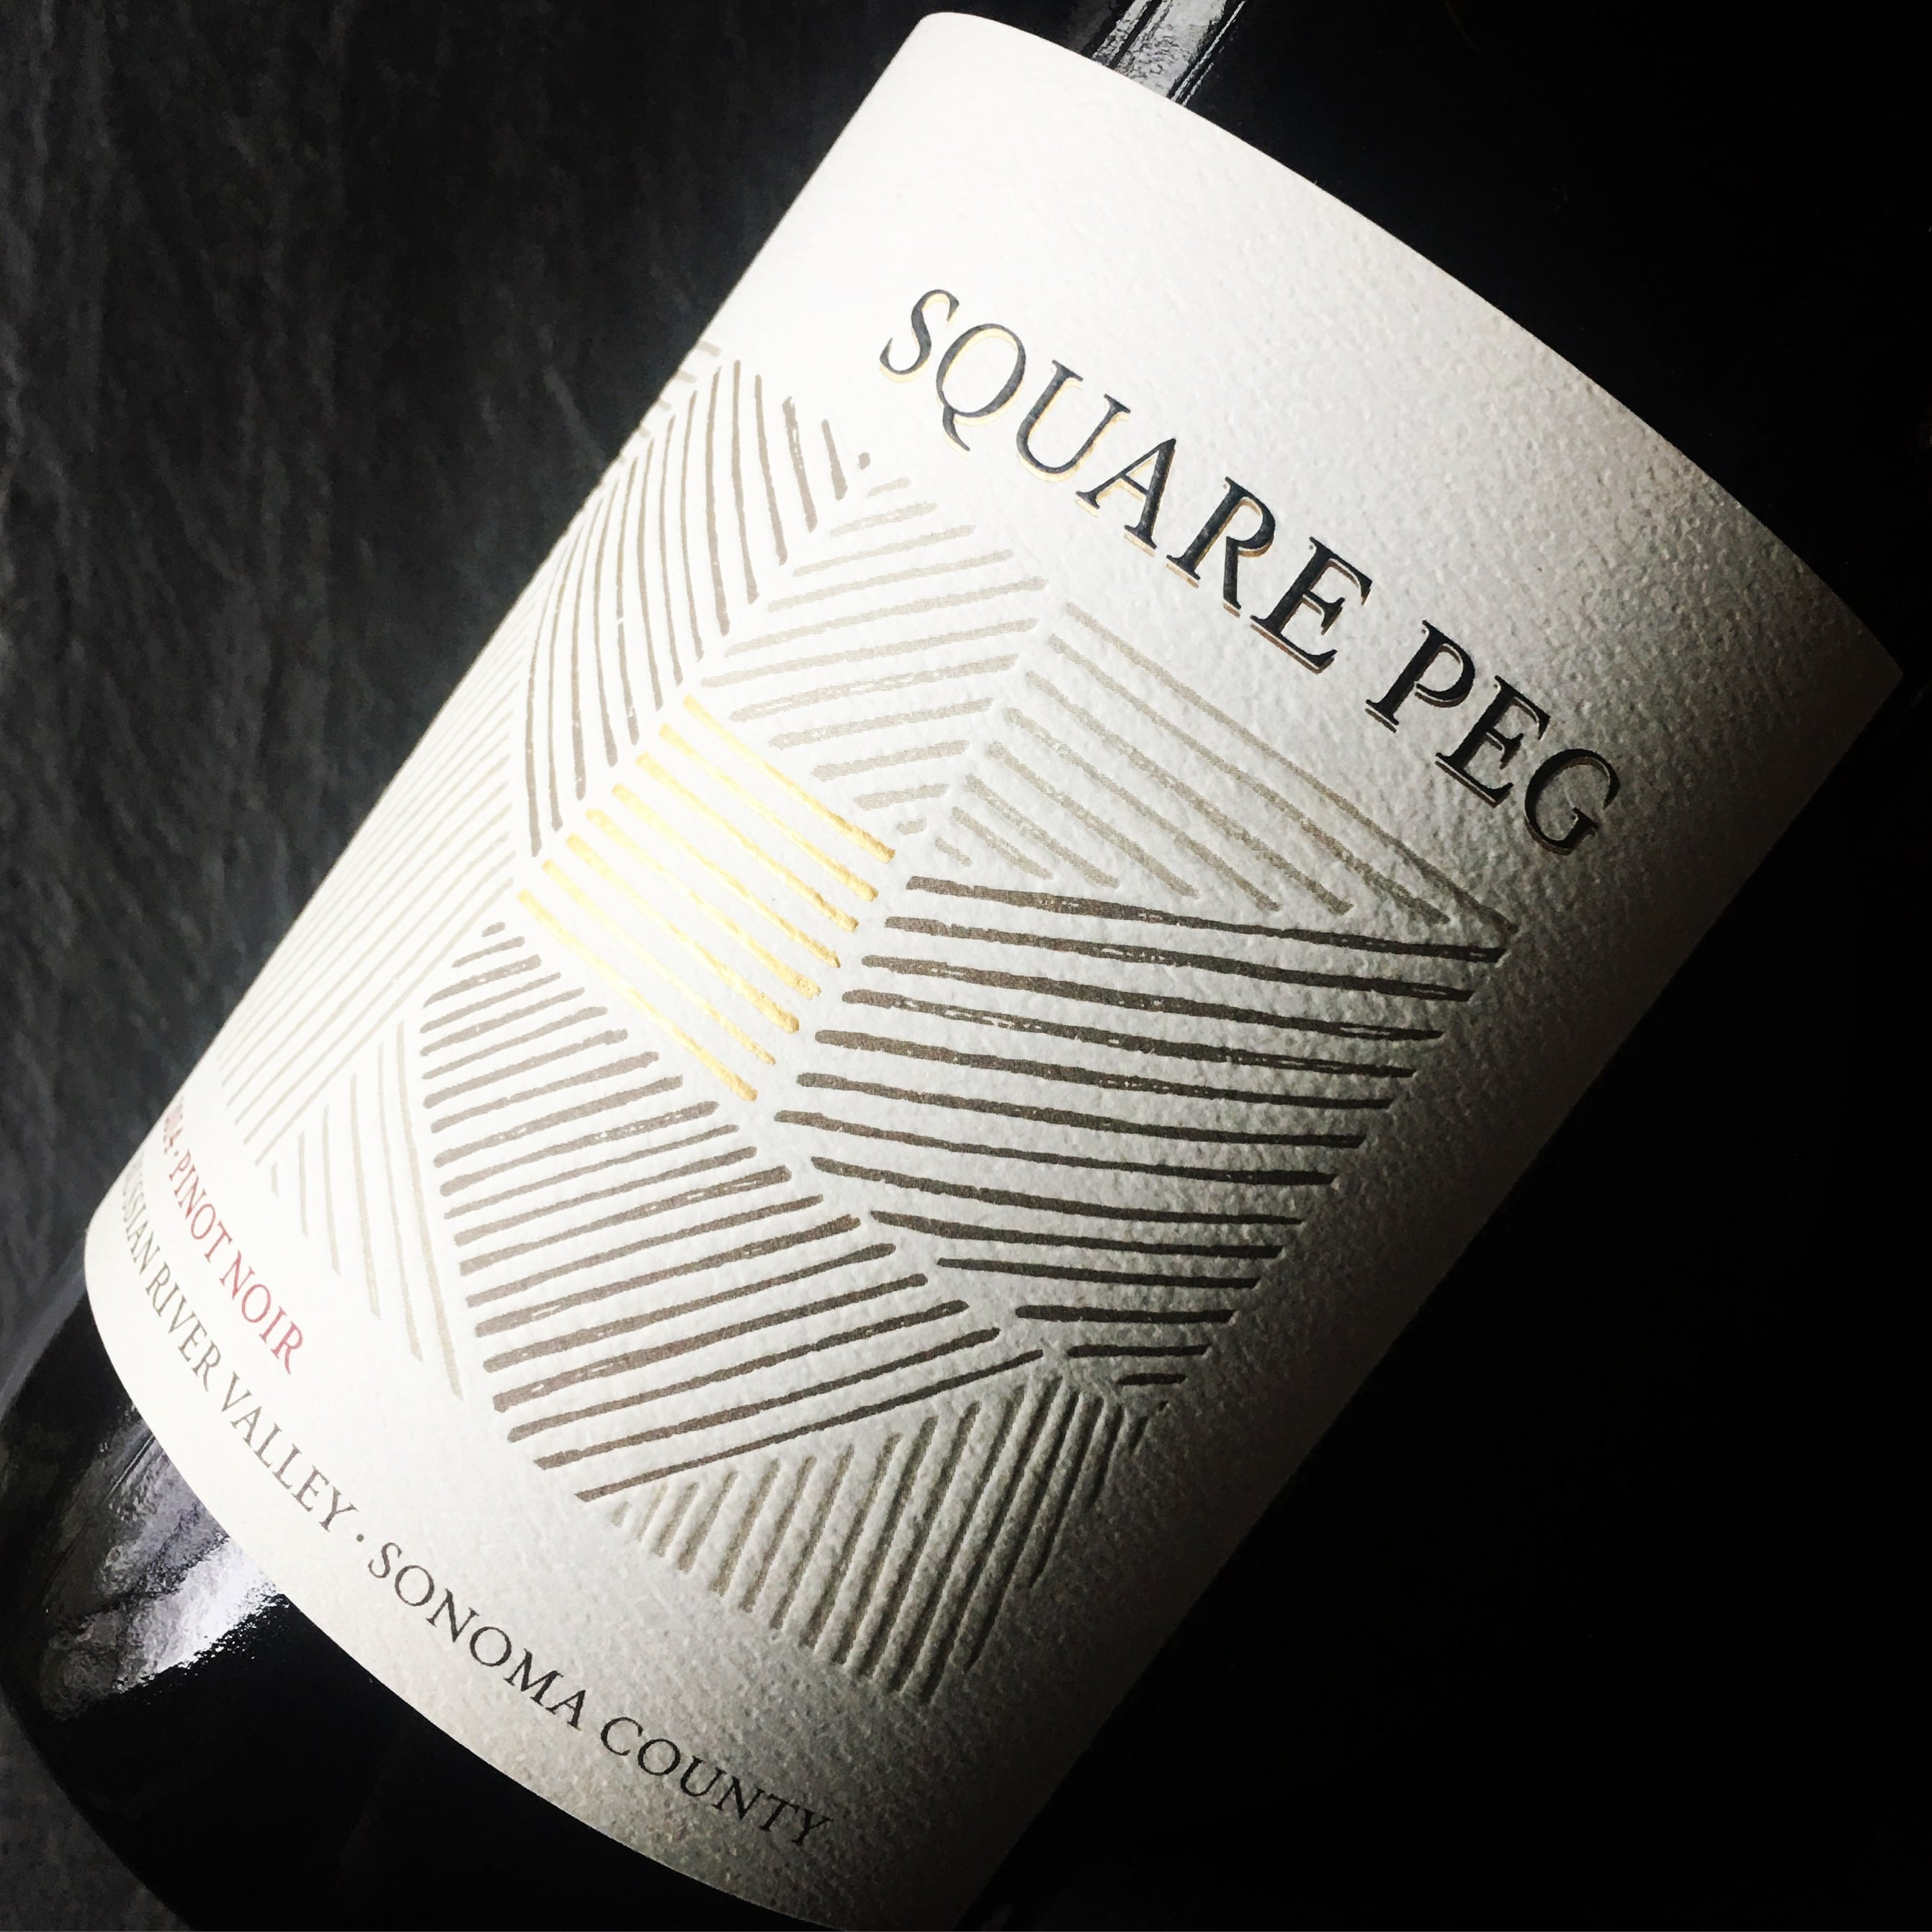 Square Peg Pinot Noir Russian River Valley 2014